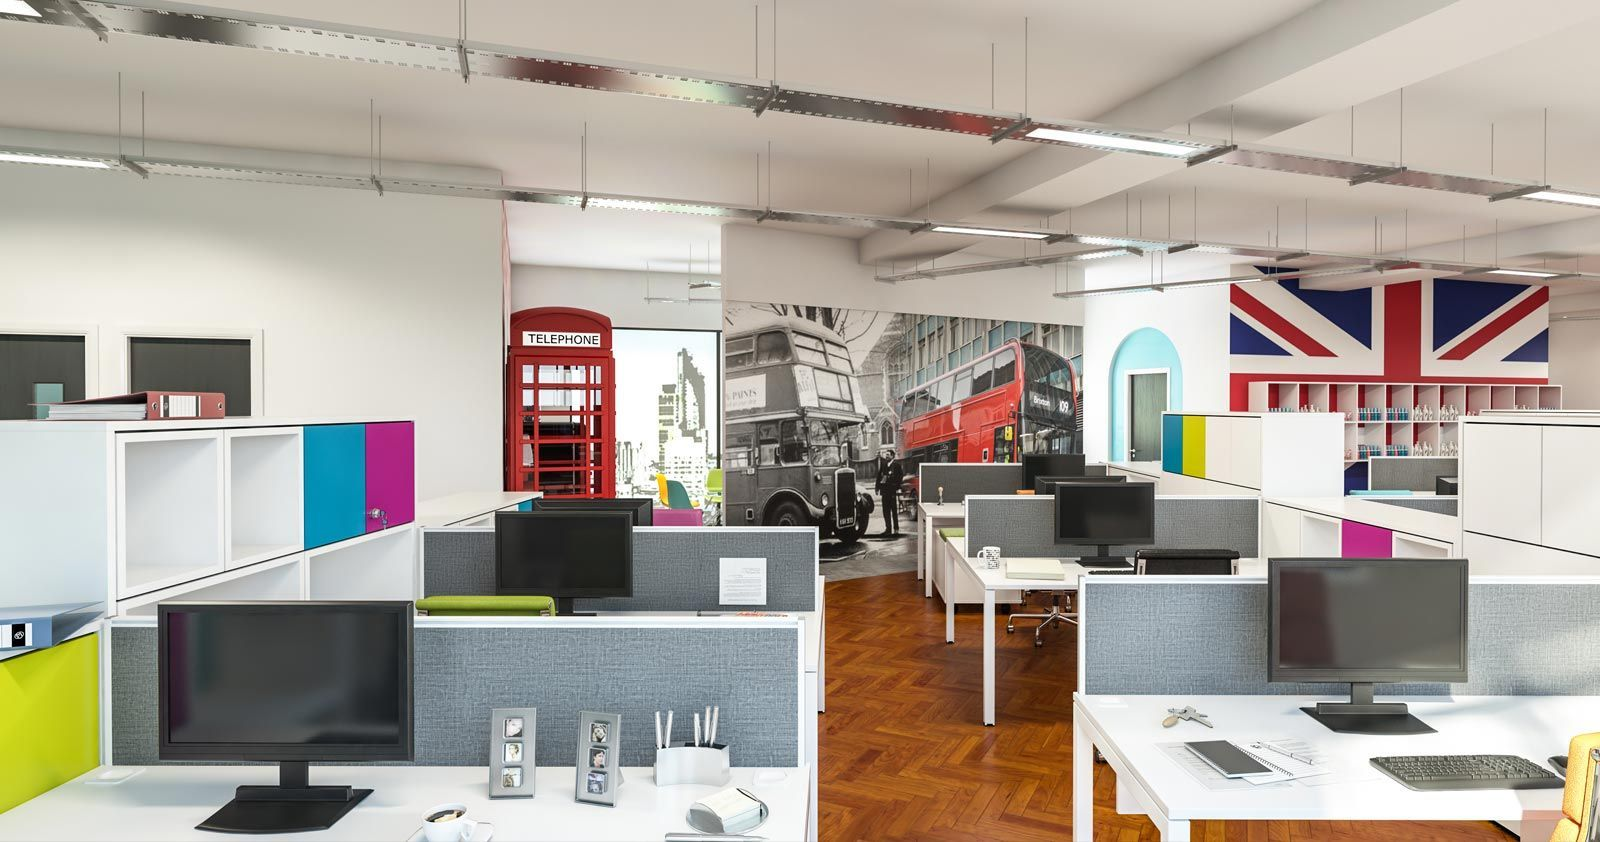 A Workplace Consultancy: Office Design Services That Define The Perfect Work Environment